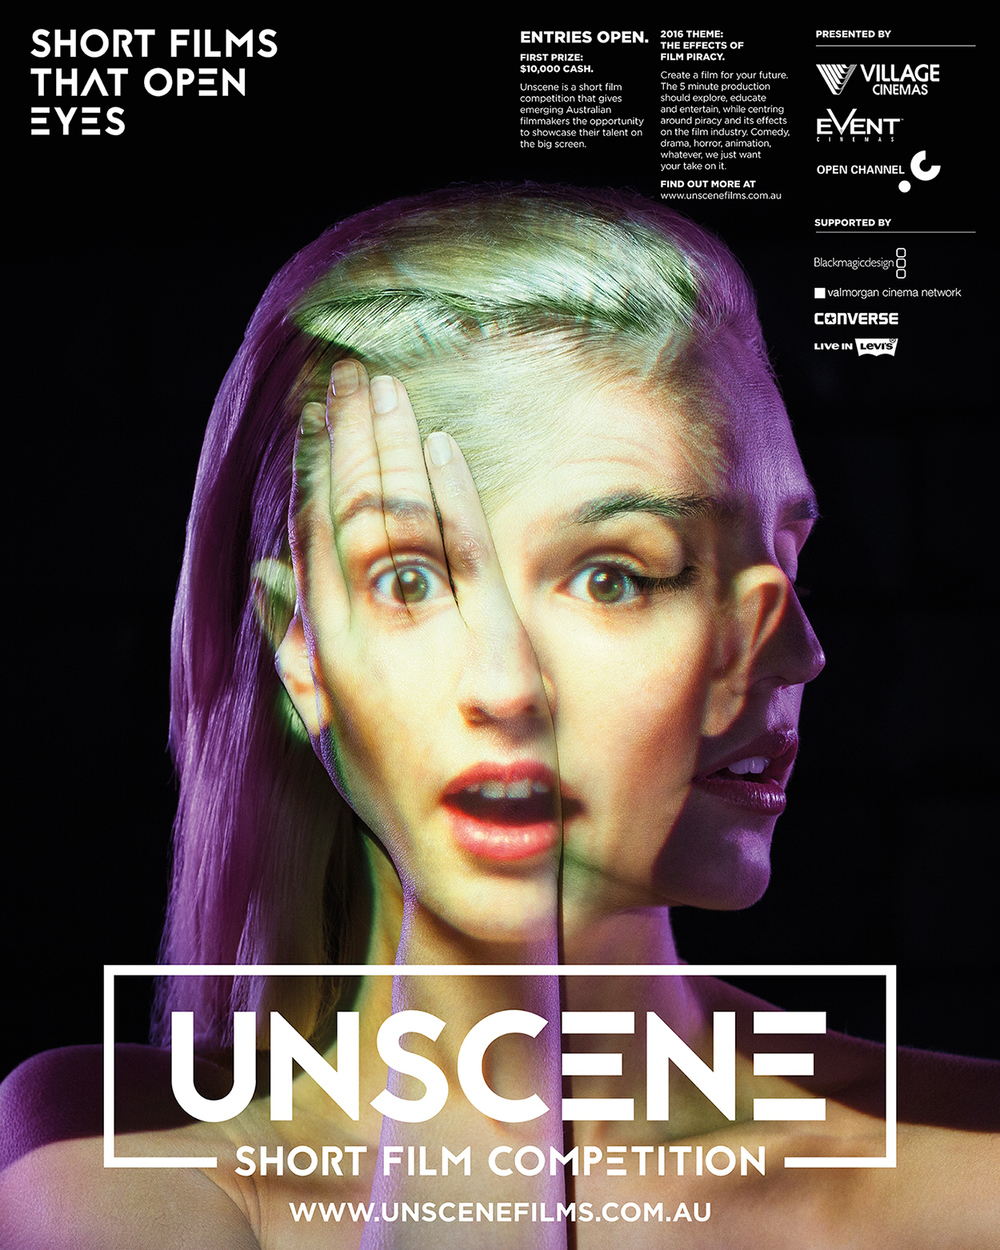 217771-VILA-Unscene-Festival-Rollout-ONE-SHEETS-4_5_RATIO_FA.jpg